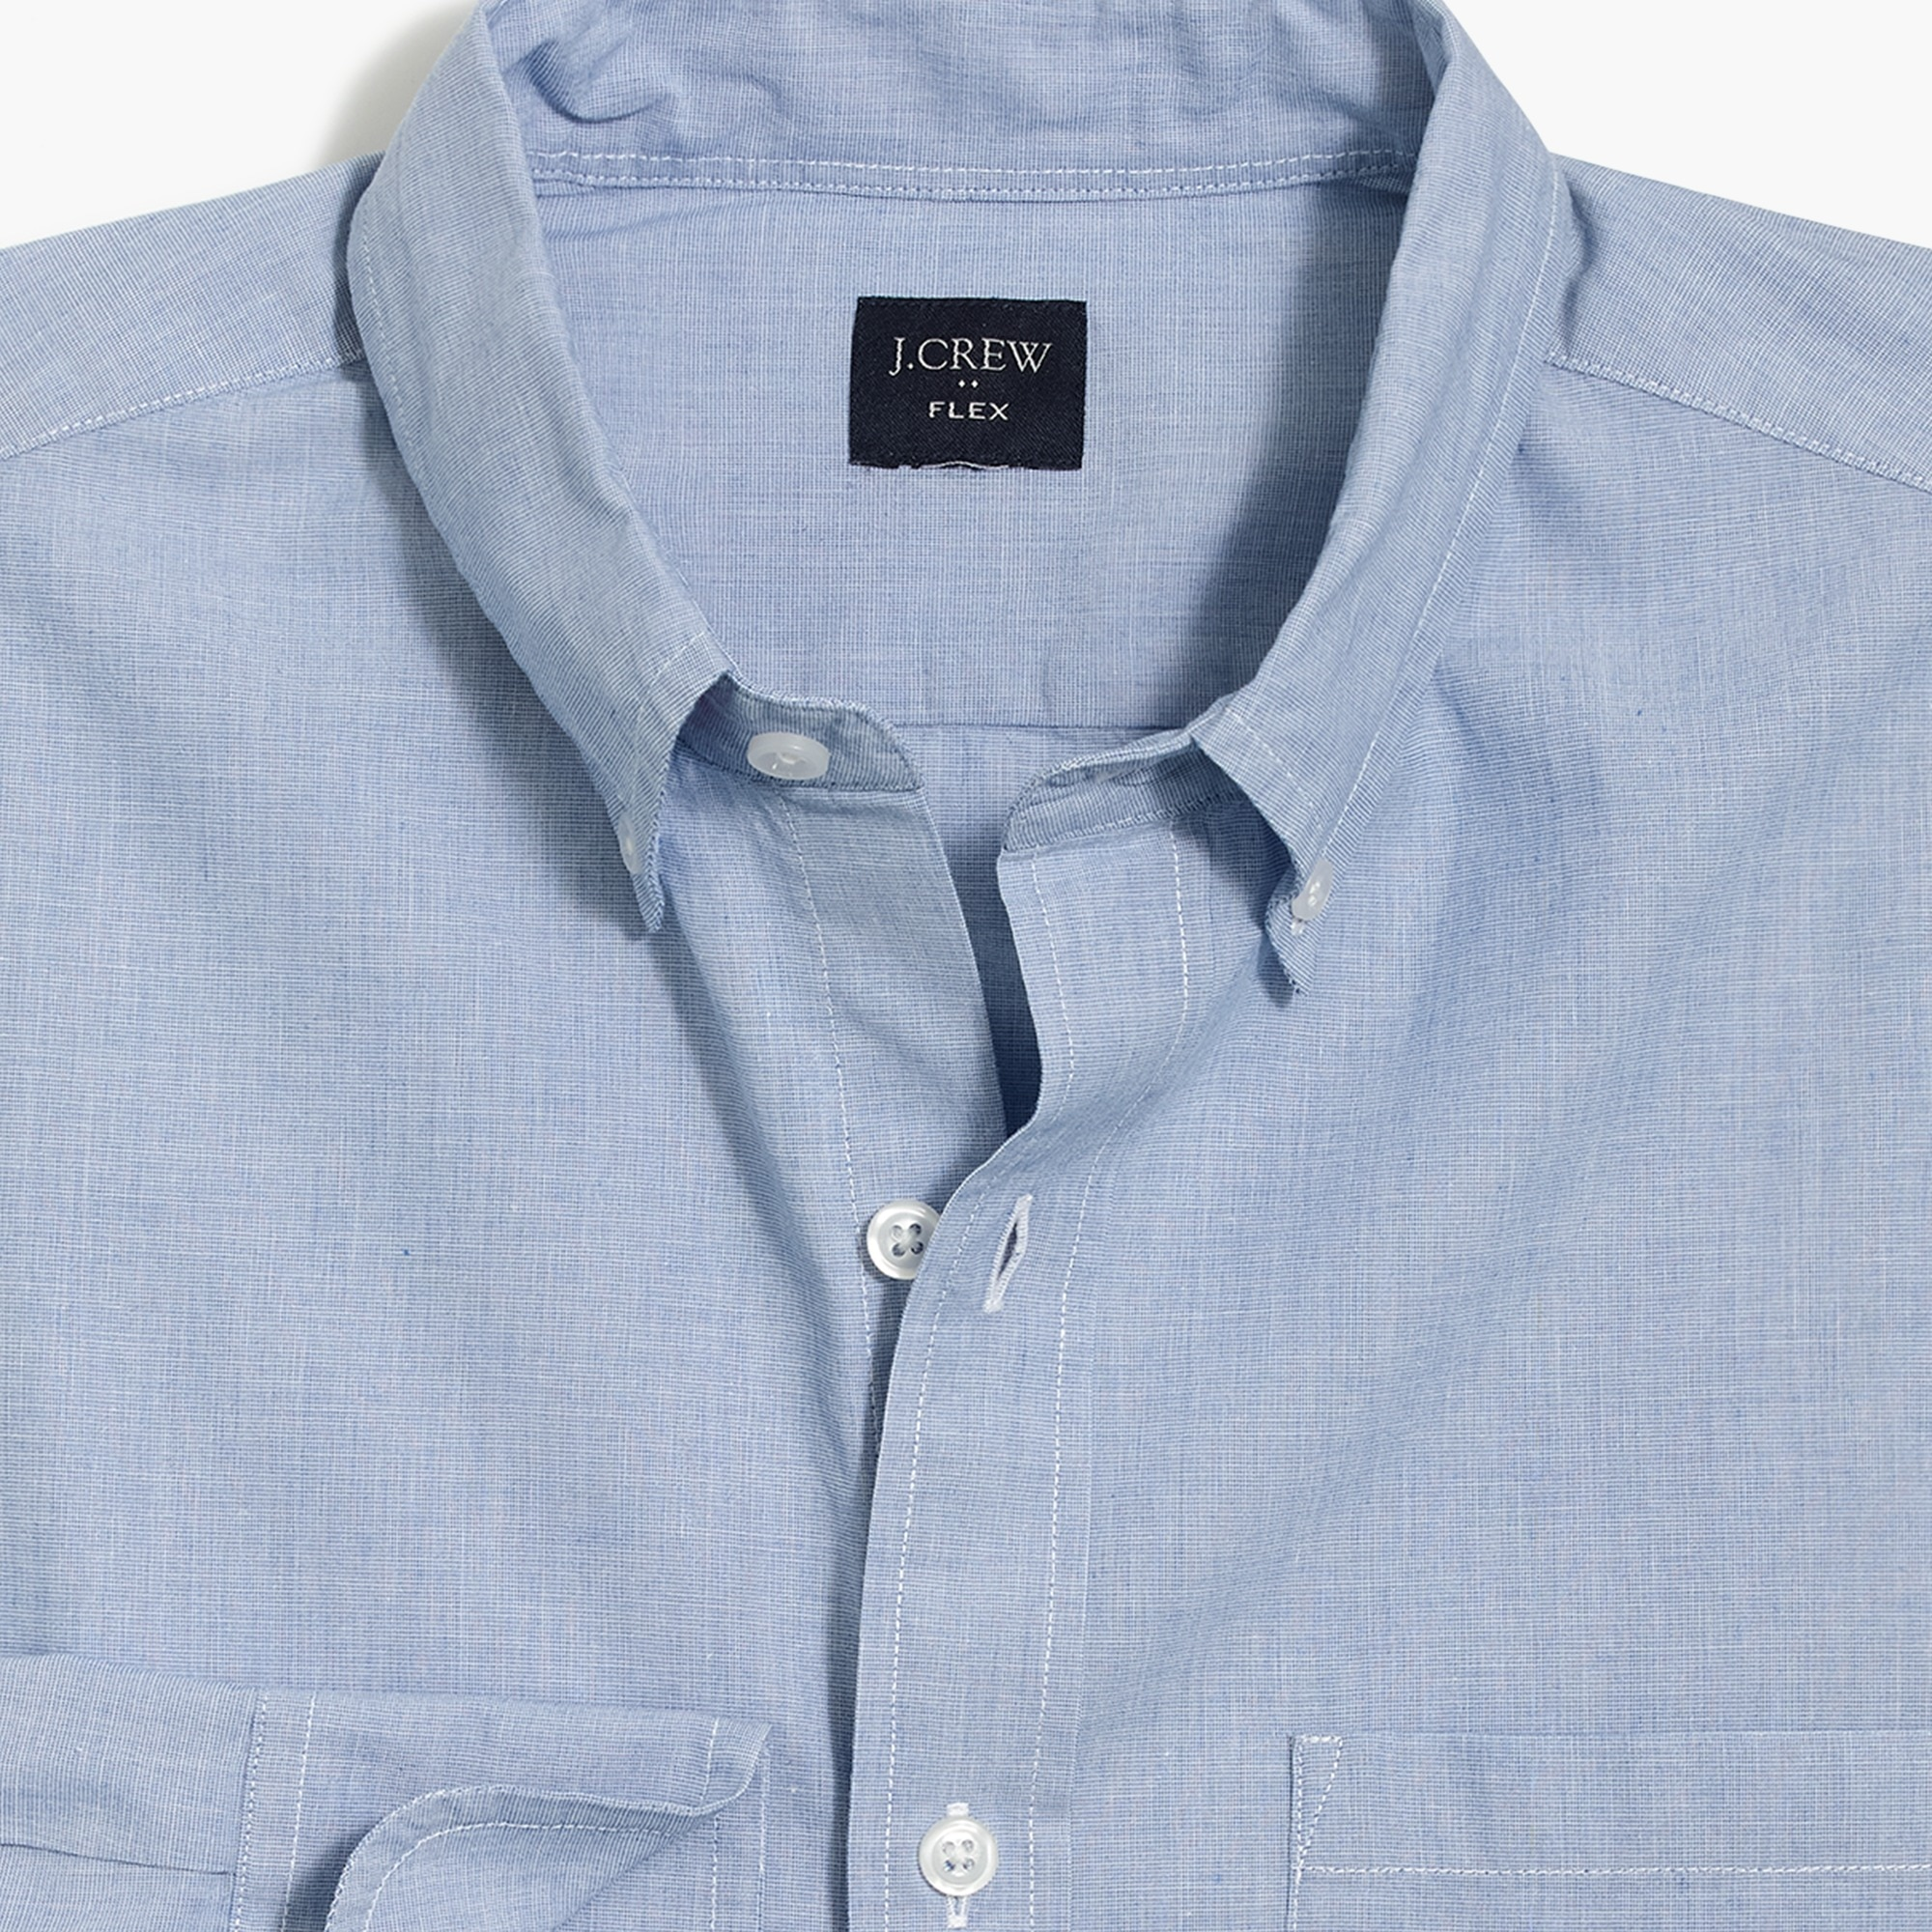 flex washed shirt : factorymen flex authentic washed